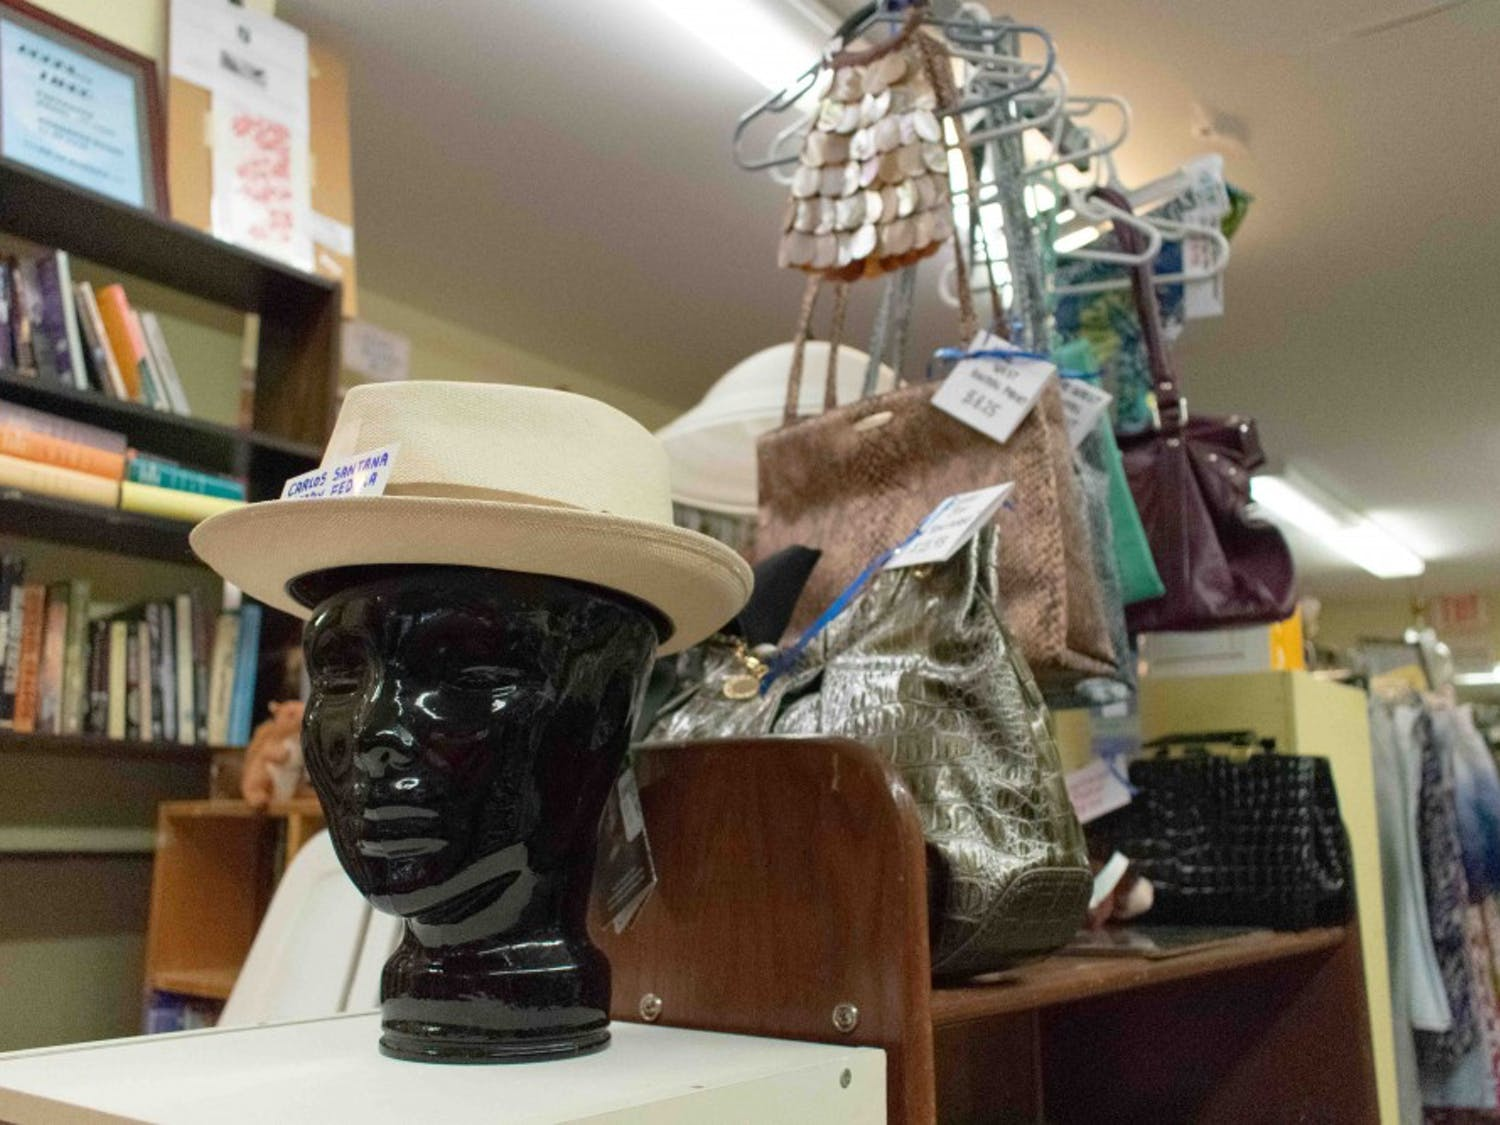 The Club Nova Thrift Shop offers reasonably priced used items, including clothing and accessories.